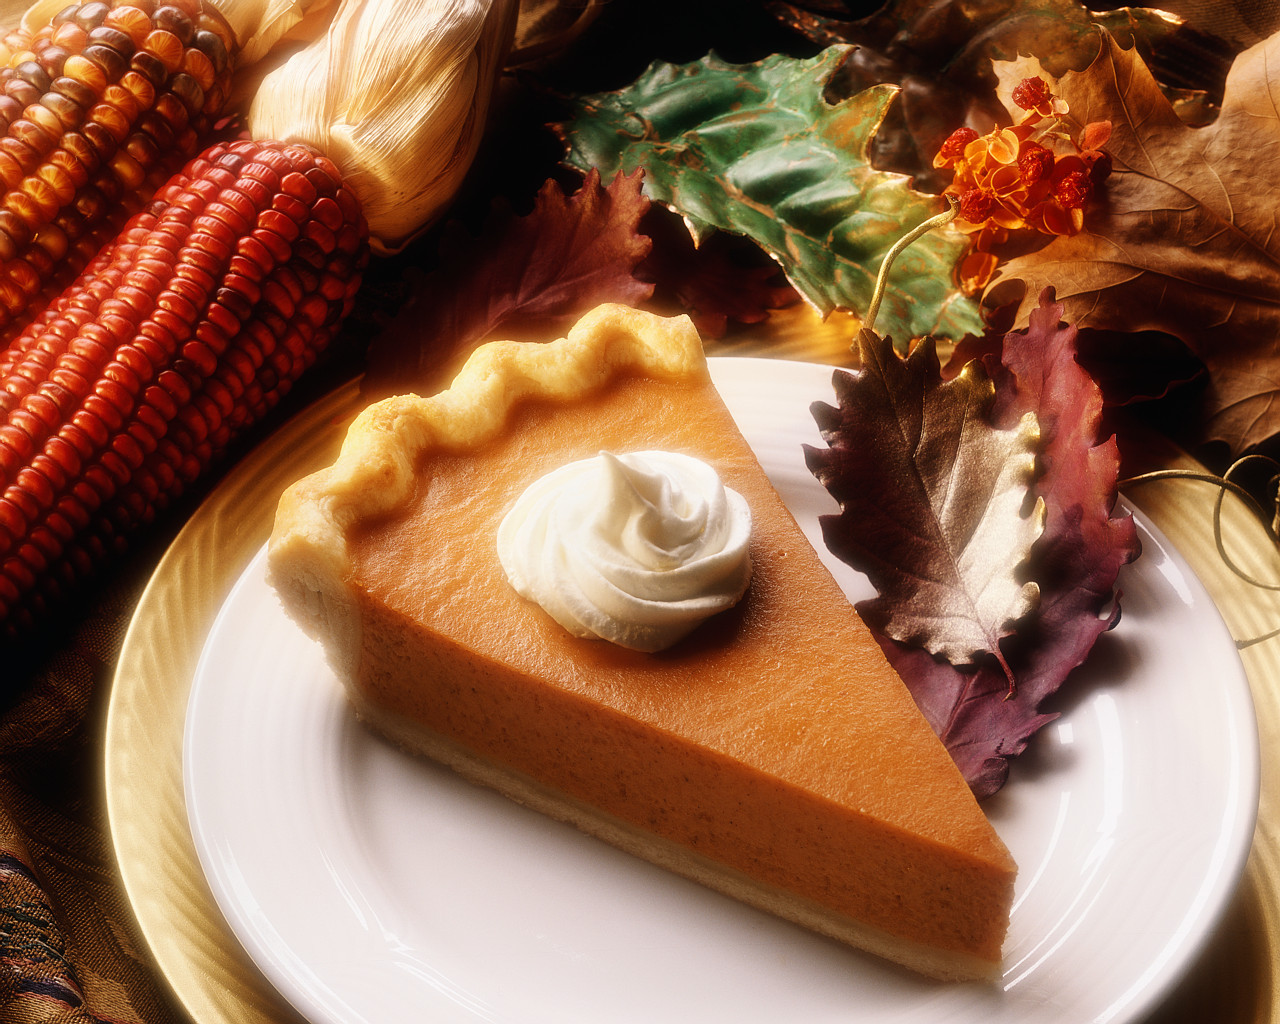 Pumpkin Pie Thanksgiving  The Thanksgiving Dinner Plate Promoting Good Health with